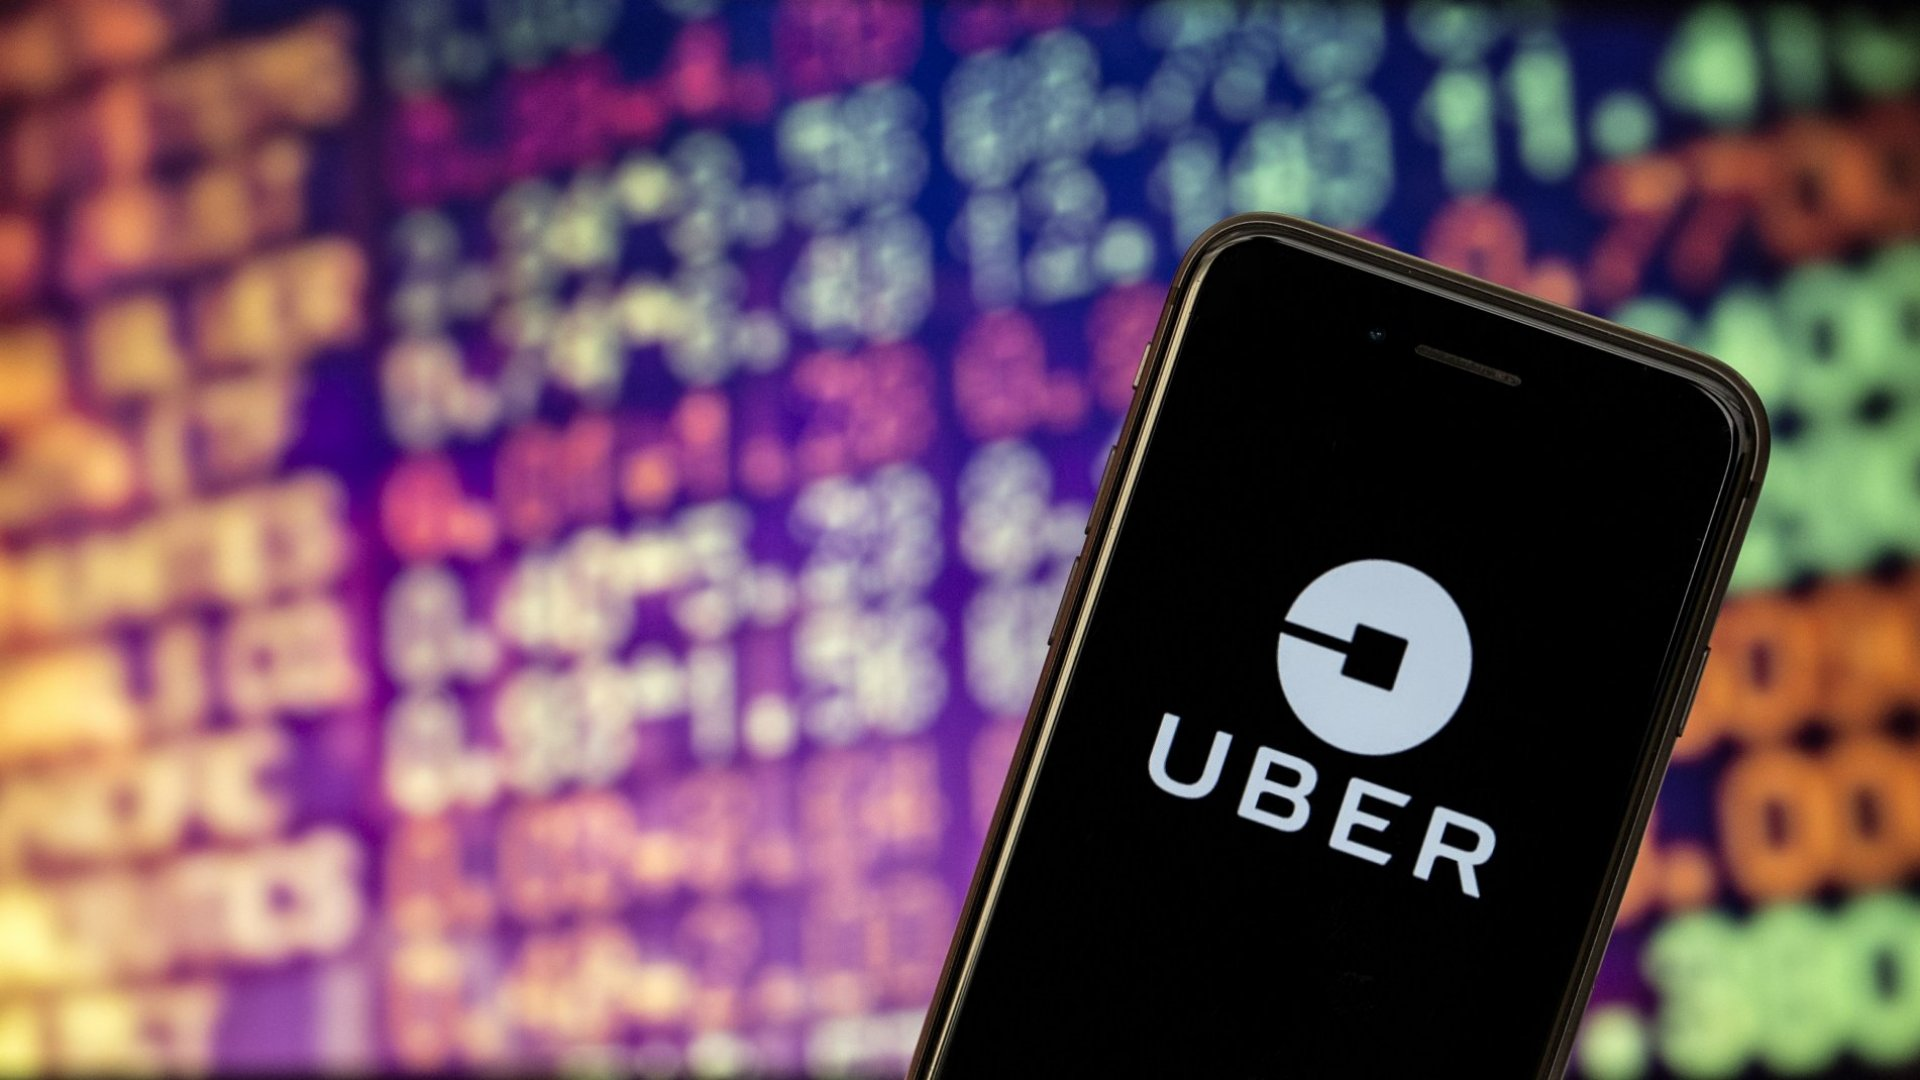 Can Uber Become the Amazon of the Gig Economy?